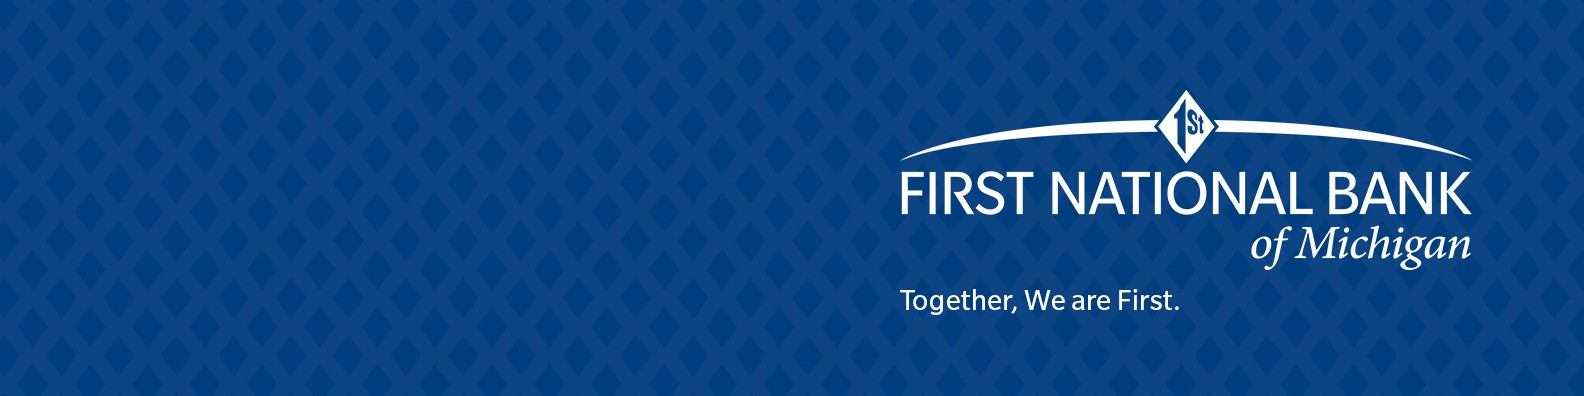 First National Bank of Michigan | LinkedIn